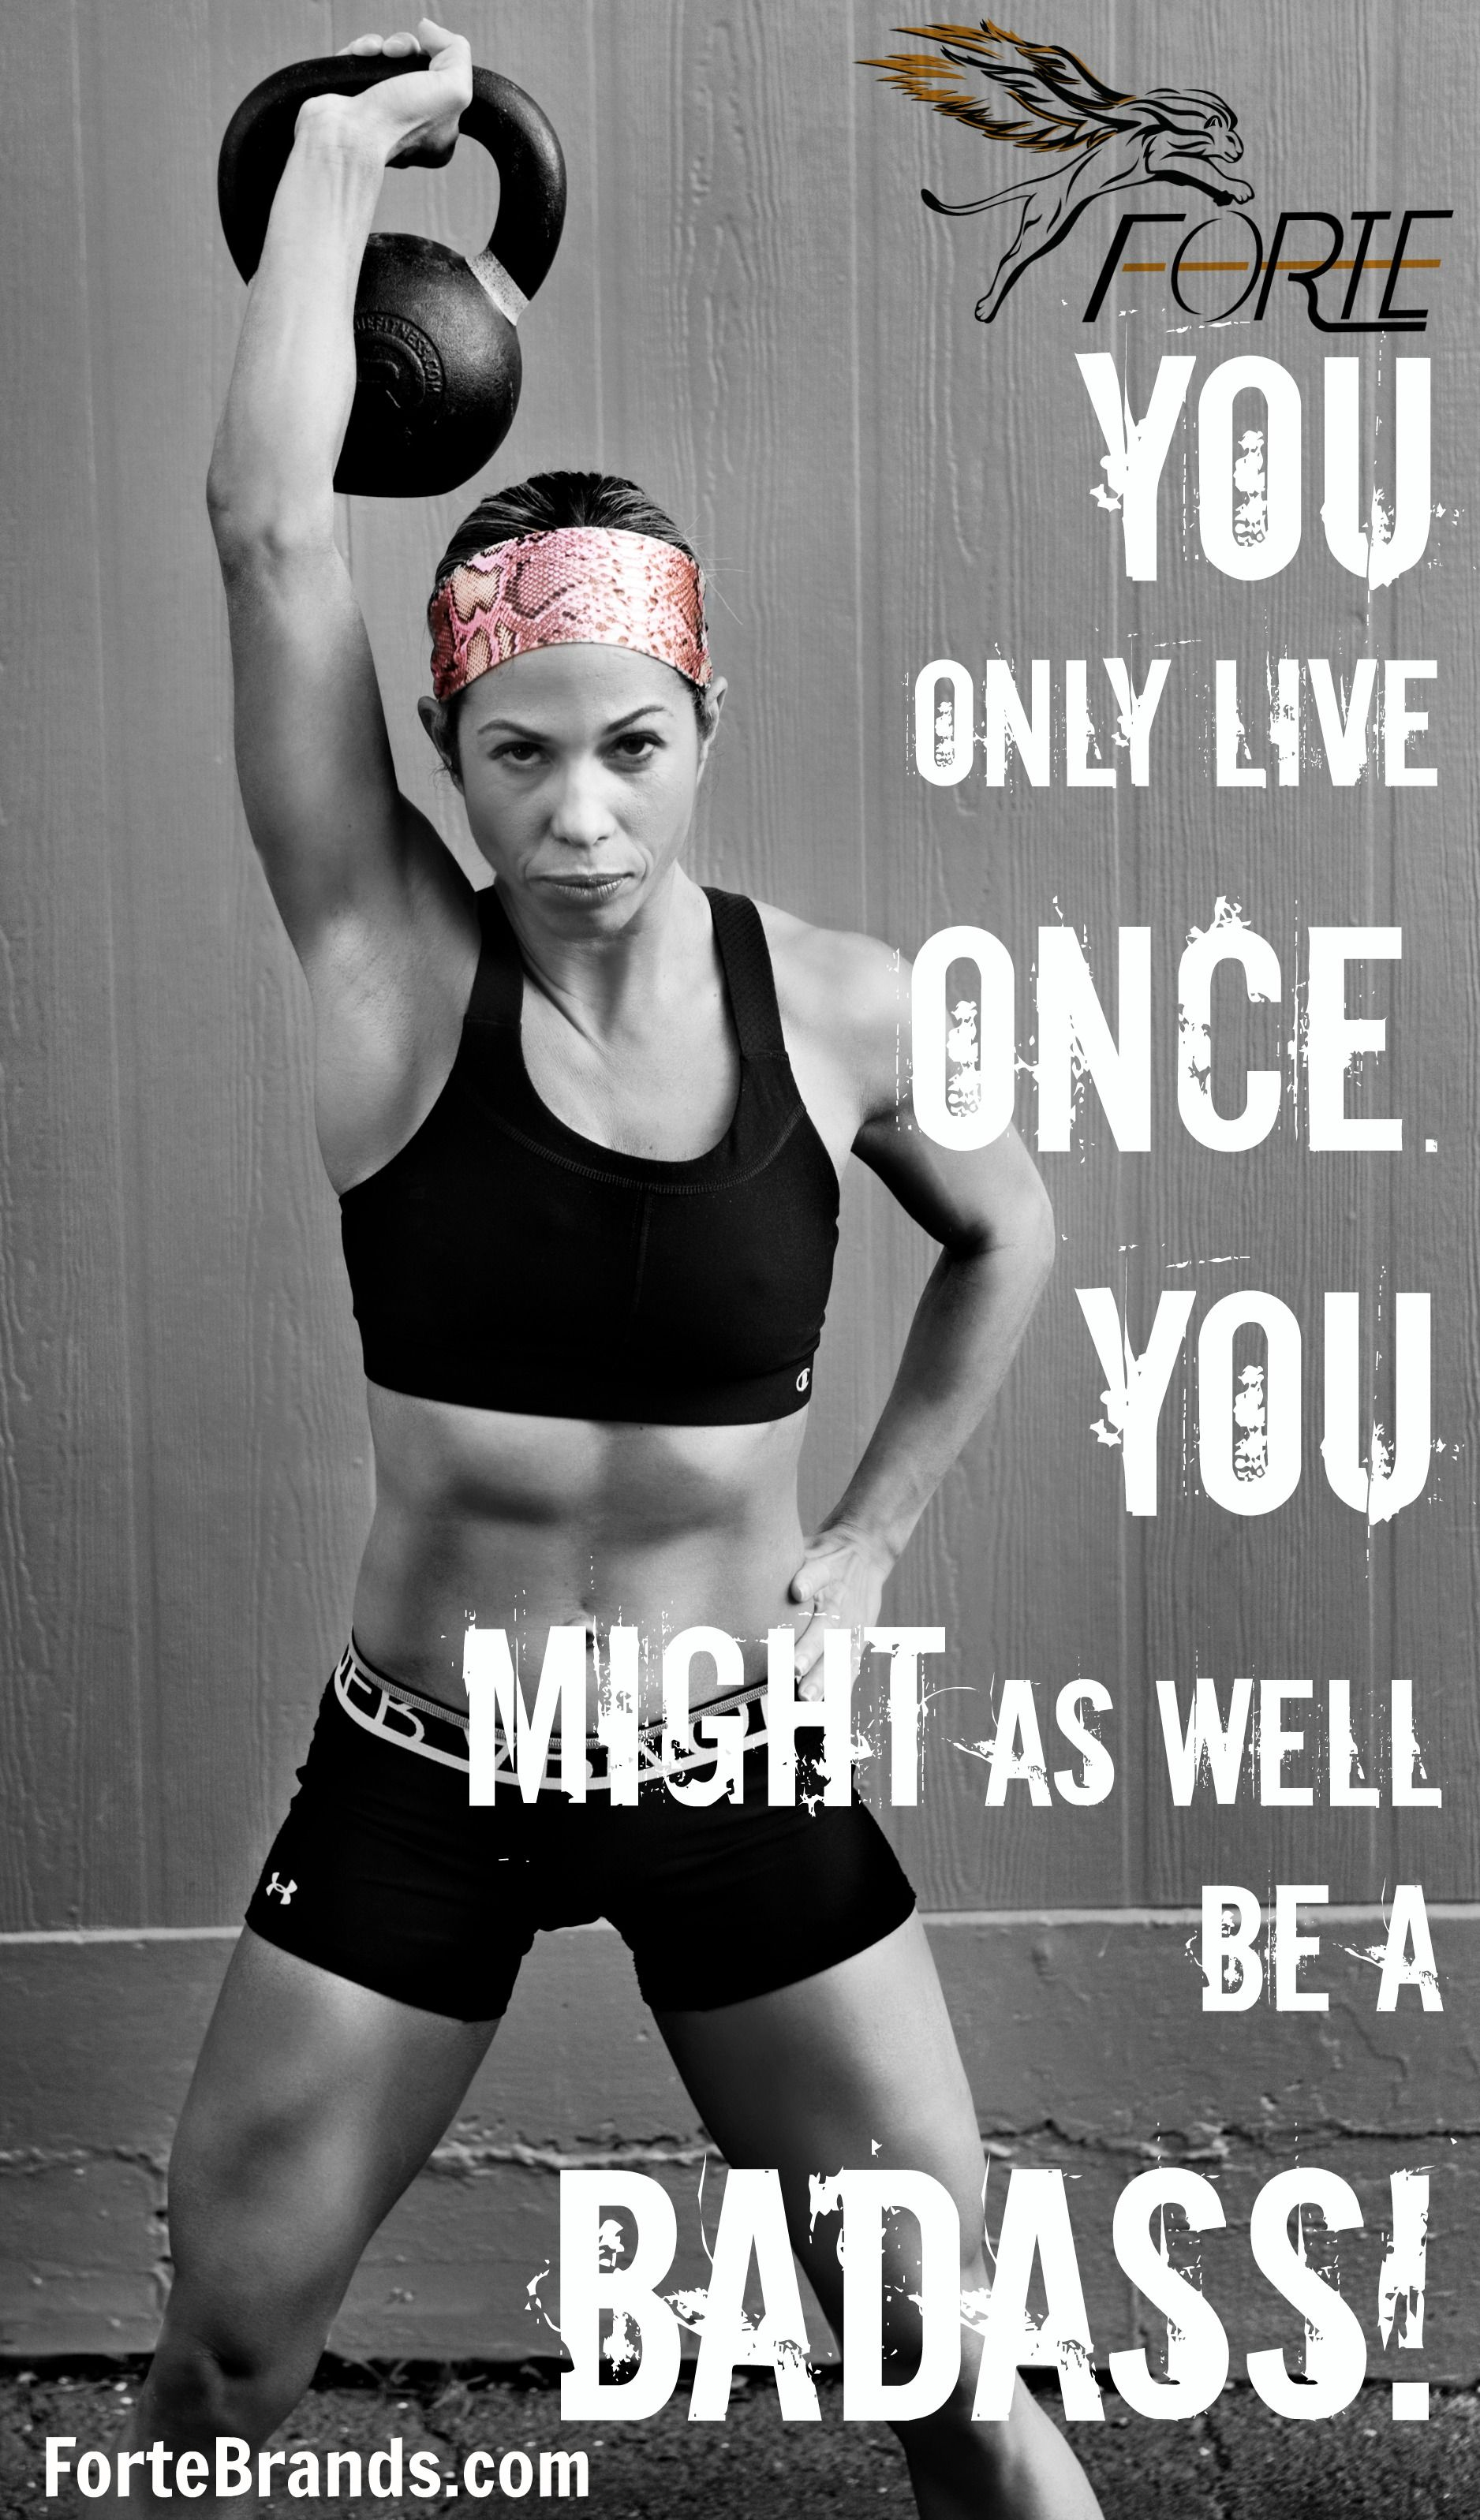 9ea7fbe602fe You Only Live once you might as well be a badass! Forte Brands Cobra Fitness